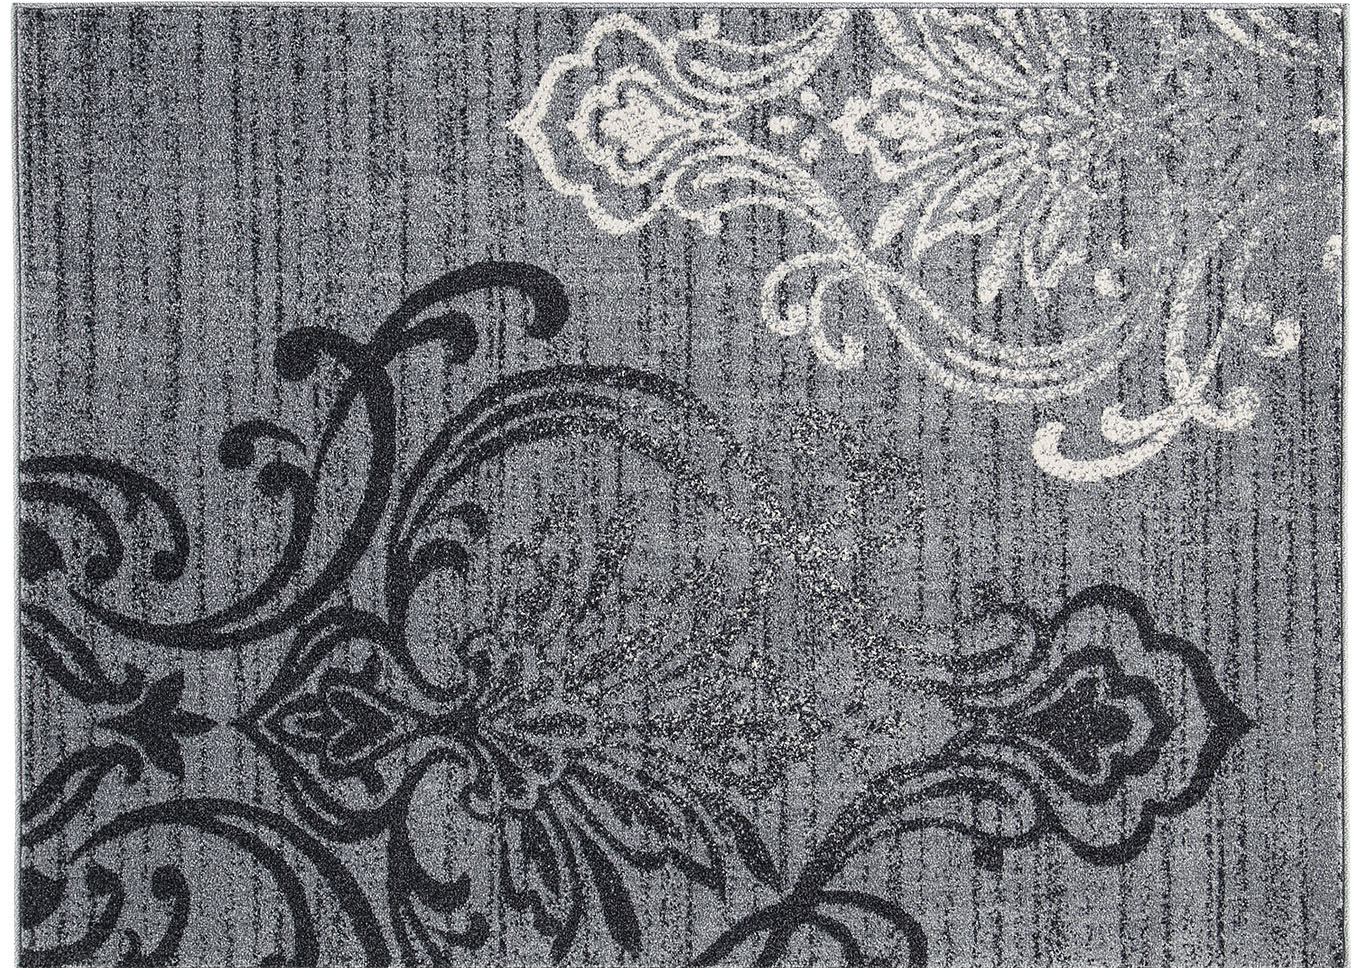 Verrill Gray/Black Medium Rug,Direct To Consumer Express